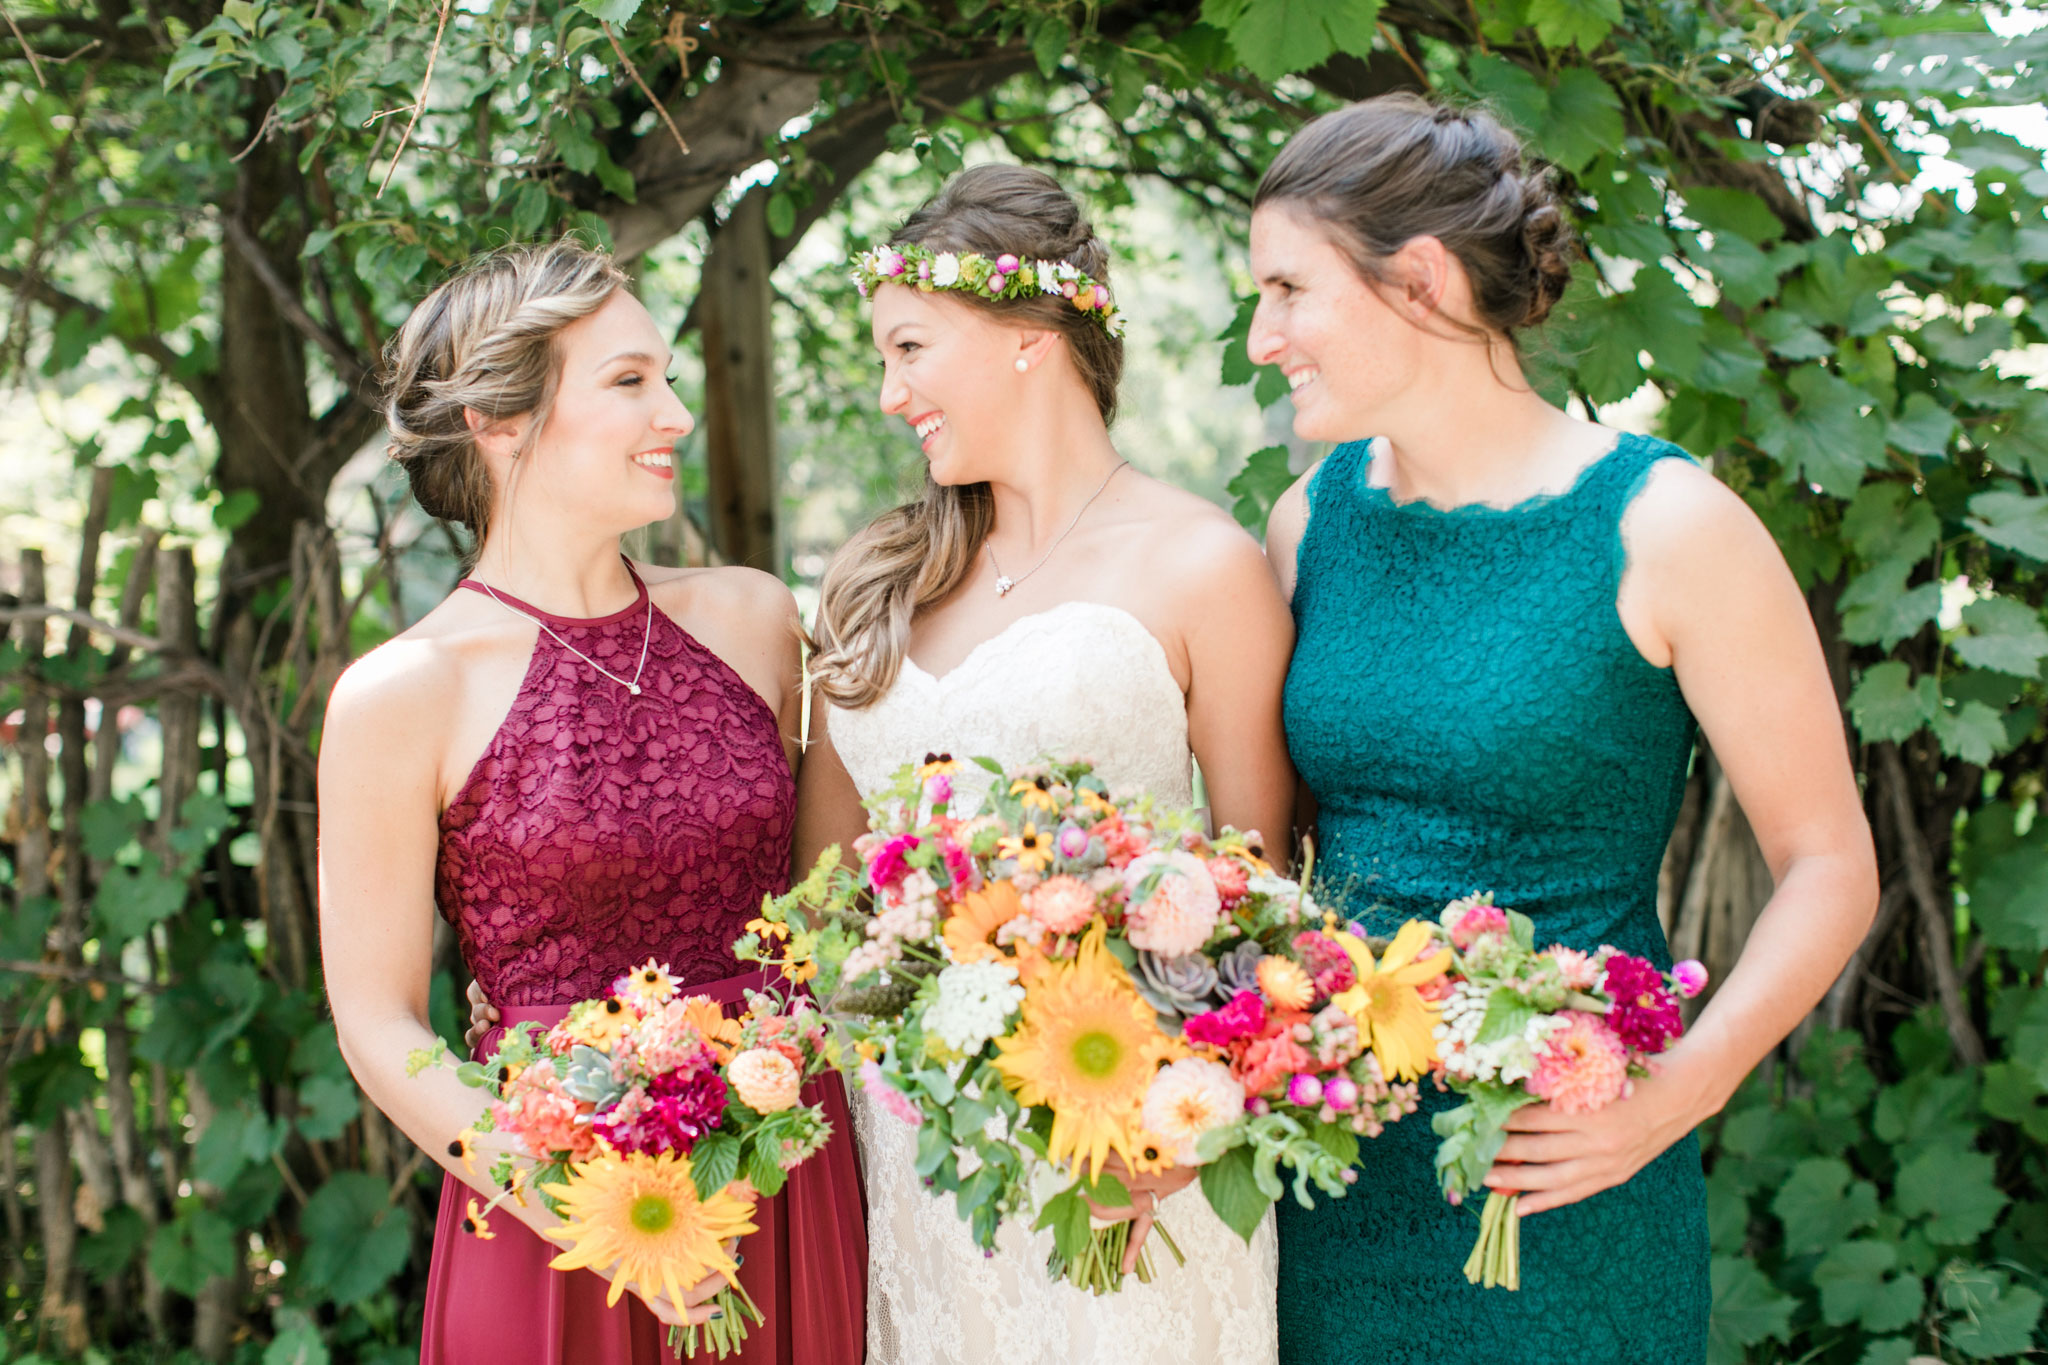 Bridesmaids | A Boho Garden Wedding in Colorado